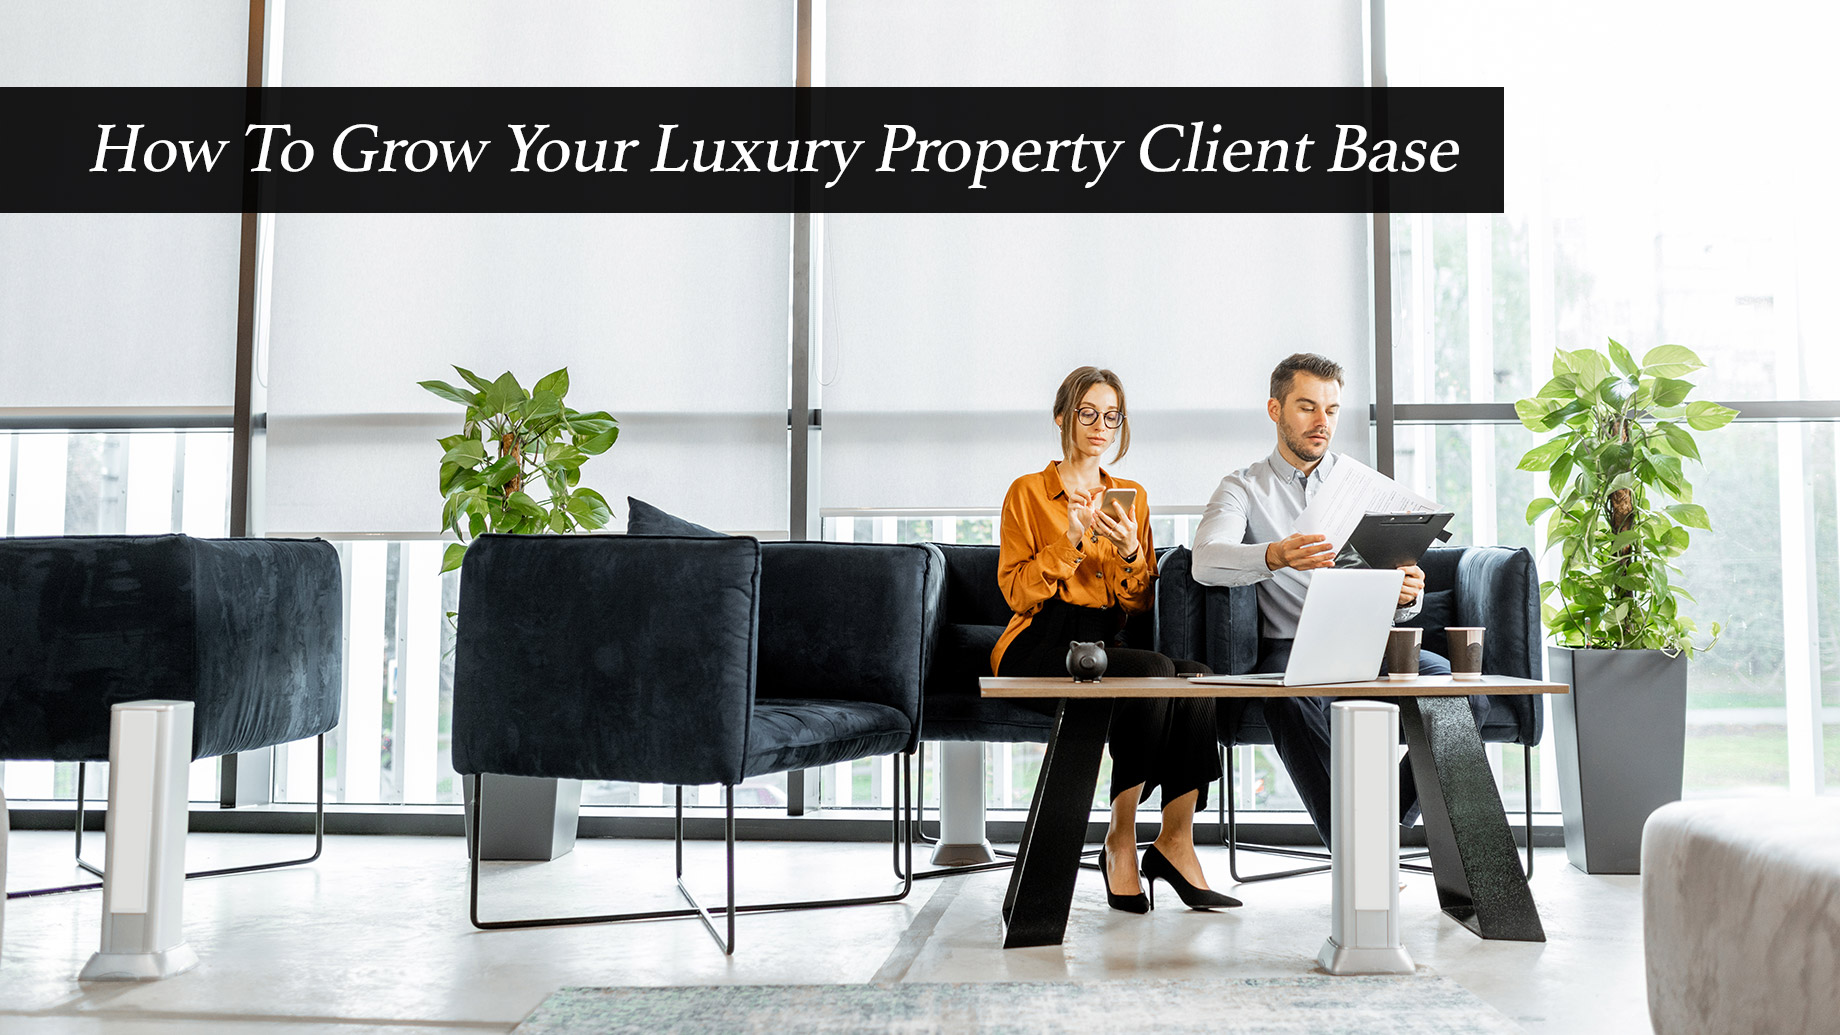 How To Grow Your Luxury Property Client Base